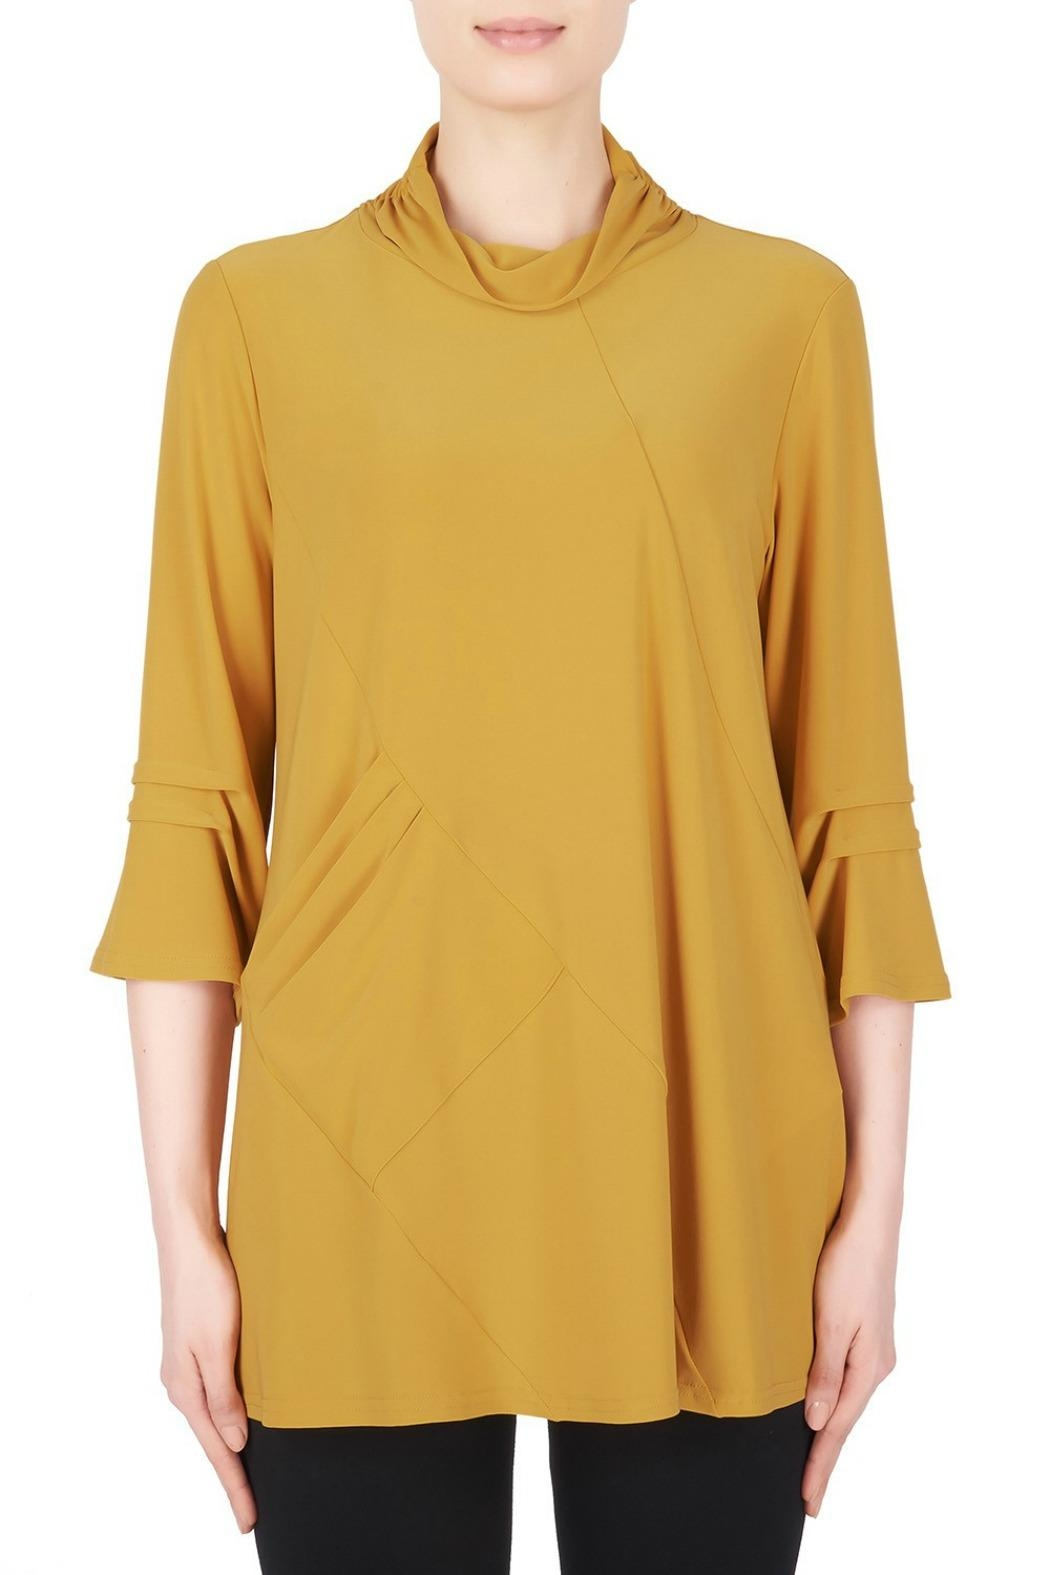 Joseph Ribkoff Tunic Top - Front Cropped Image